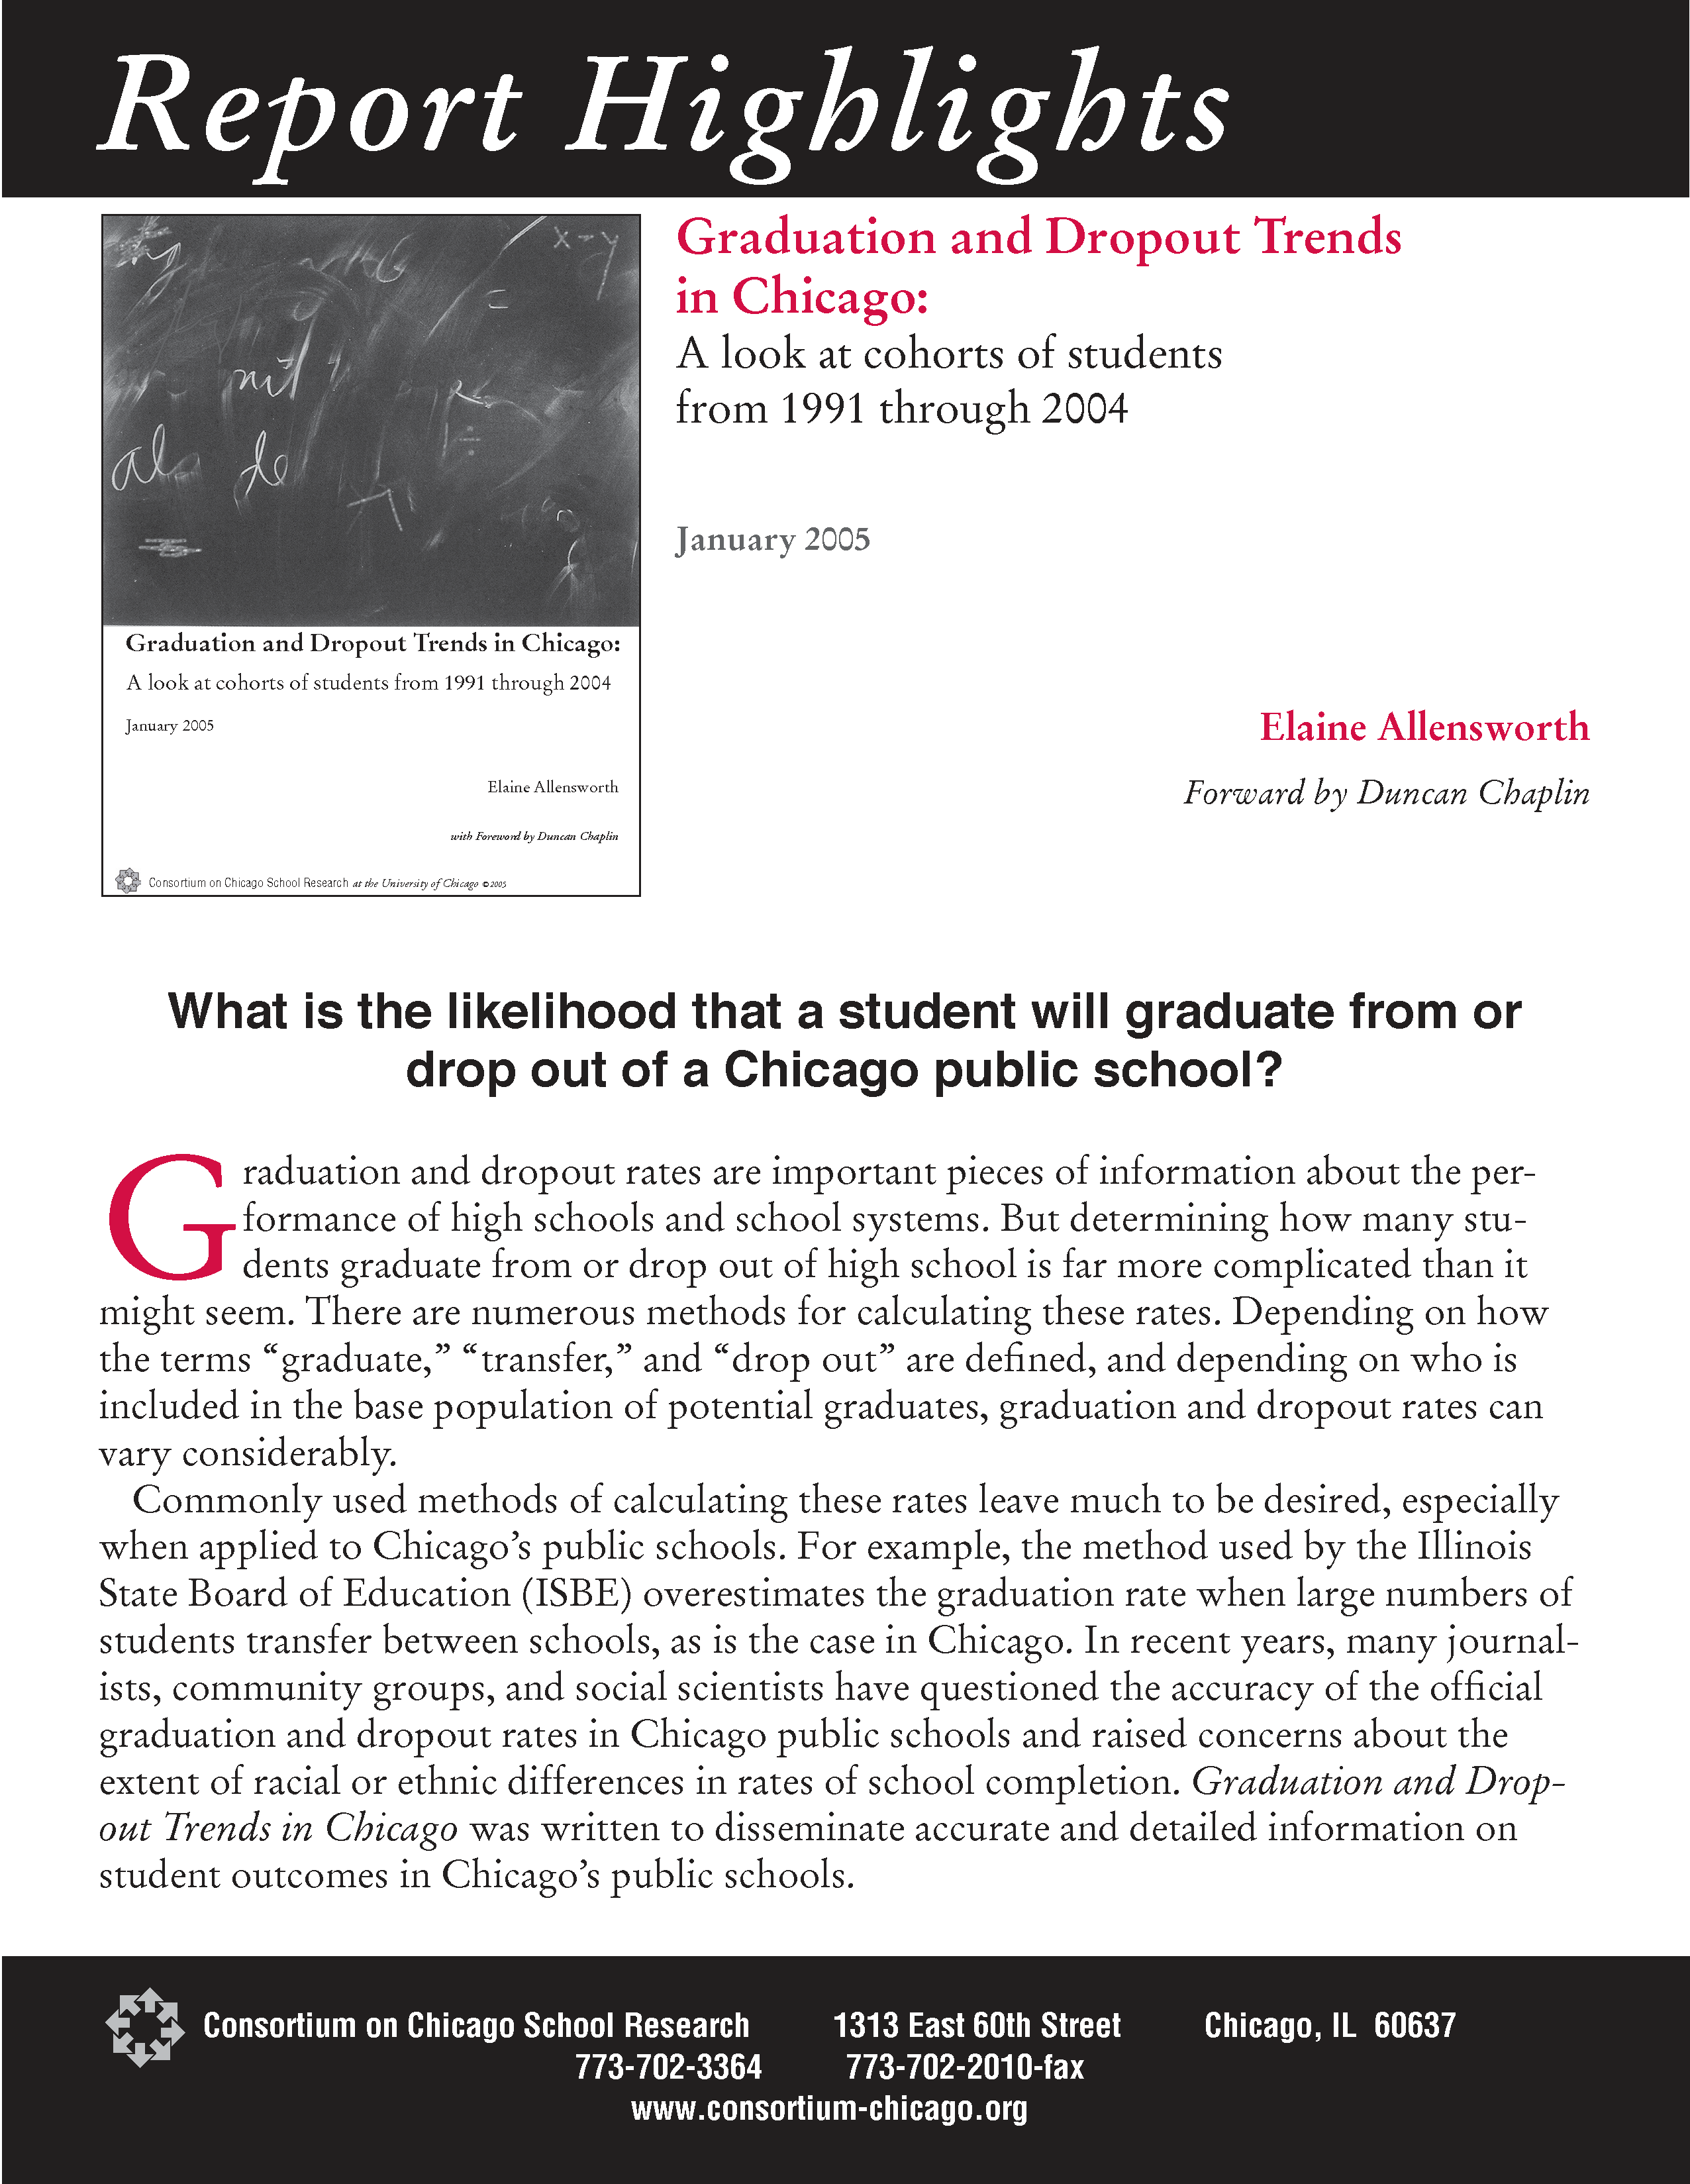 Graduation and Dropout Trends in Chicago: A look at cohorts of students from 1991 through 2004 (highlights)